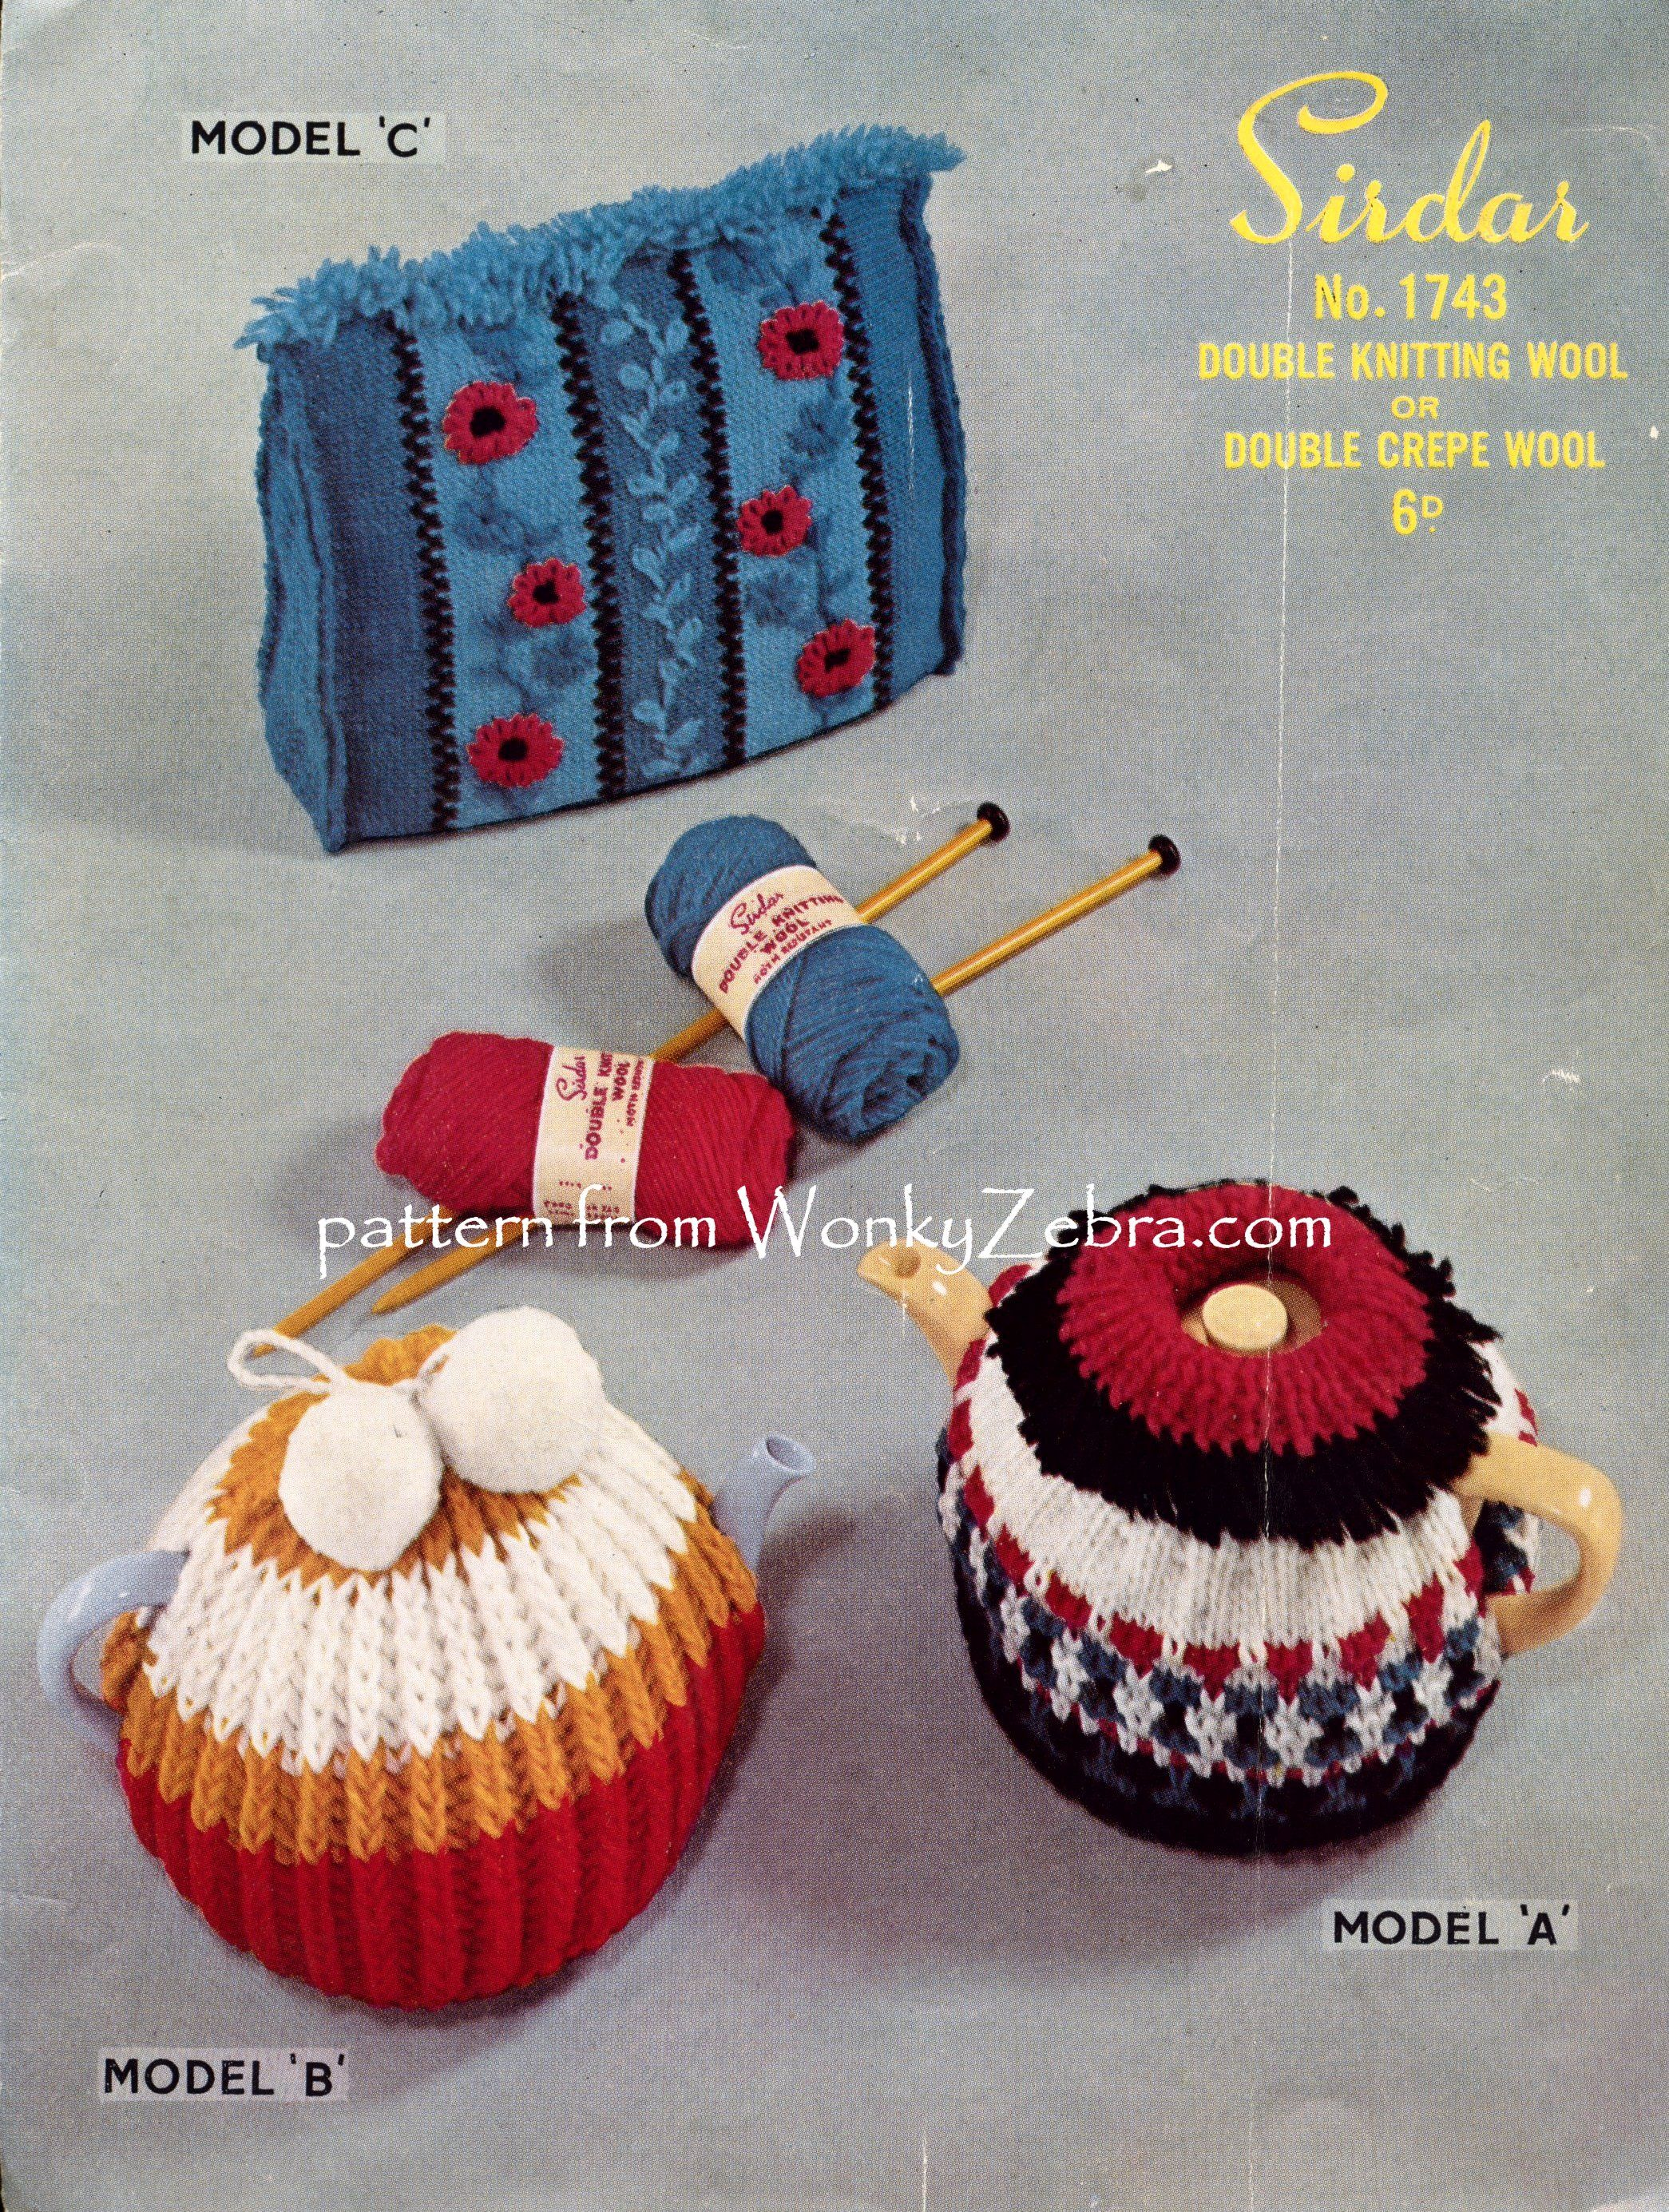 A Knitting Pattern For A 3 Retro Tea Cosies Originally From